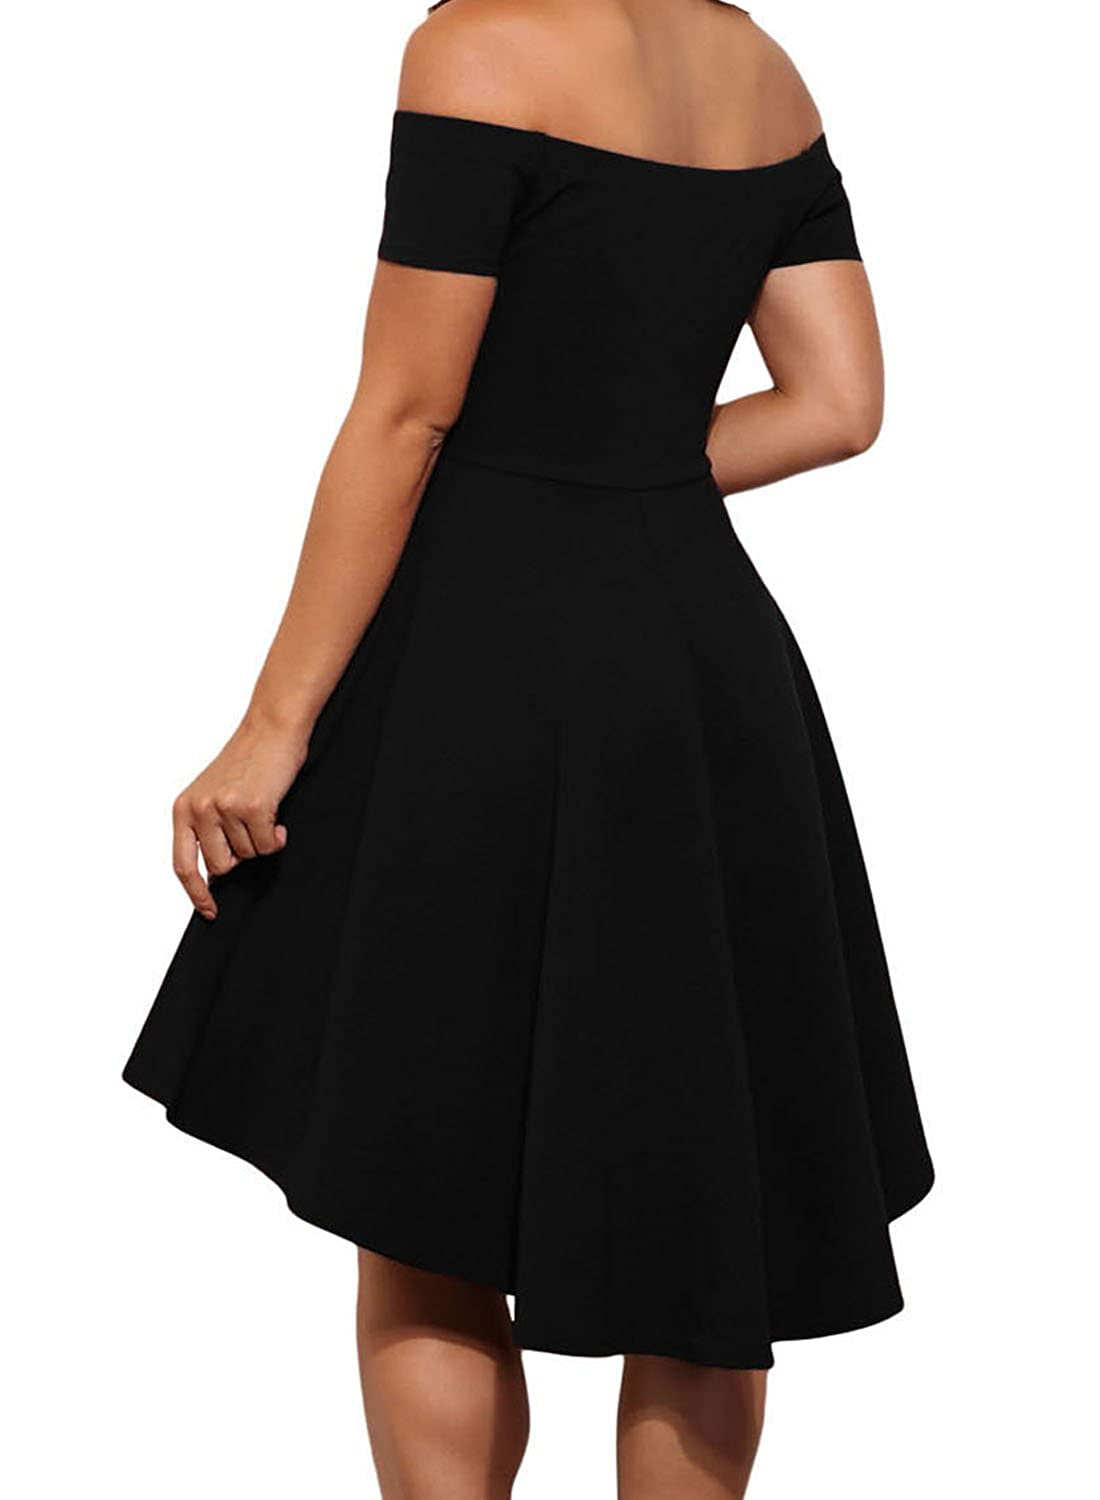 e86bfc7b4e0 LOSRLY Womens Off The Shoulder Skater High Low Homecoming Party Cocktail  Dress at Amazon Women s Clothing store